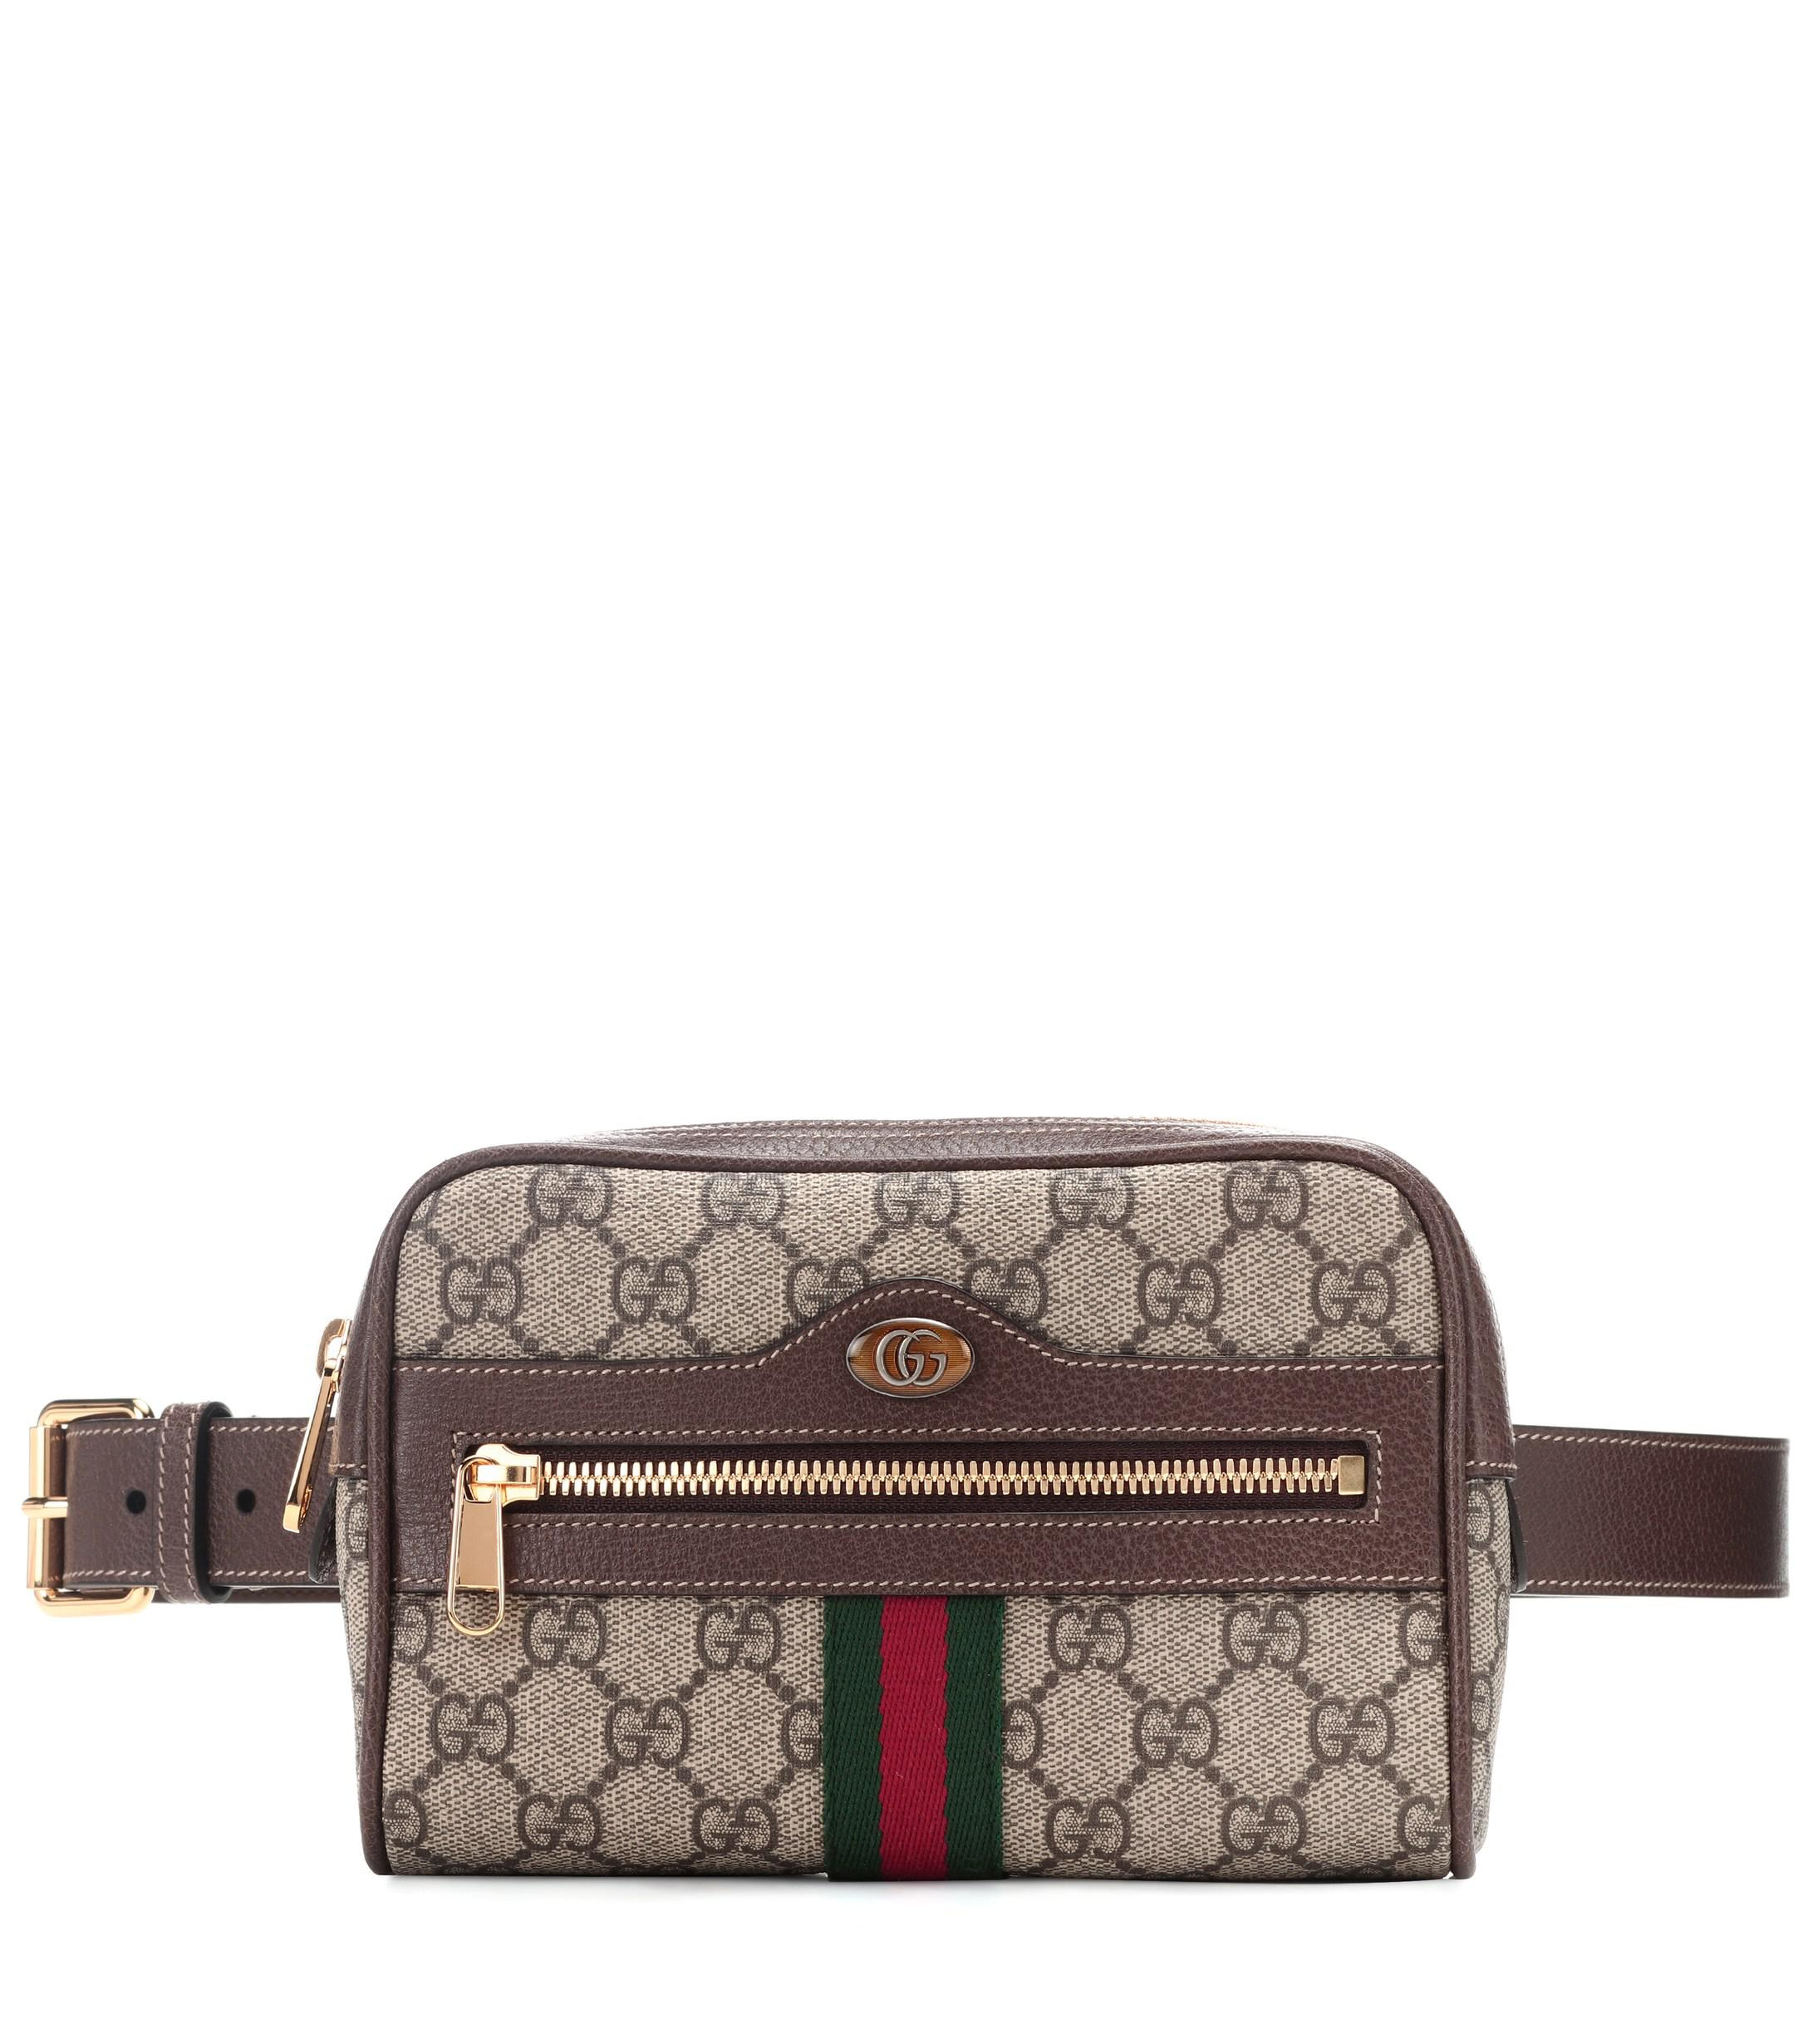 f4ee3ac0f3a Gucci Ophidia GG Supreme Small Belt Bag in Brown - Save ...